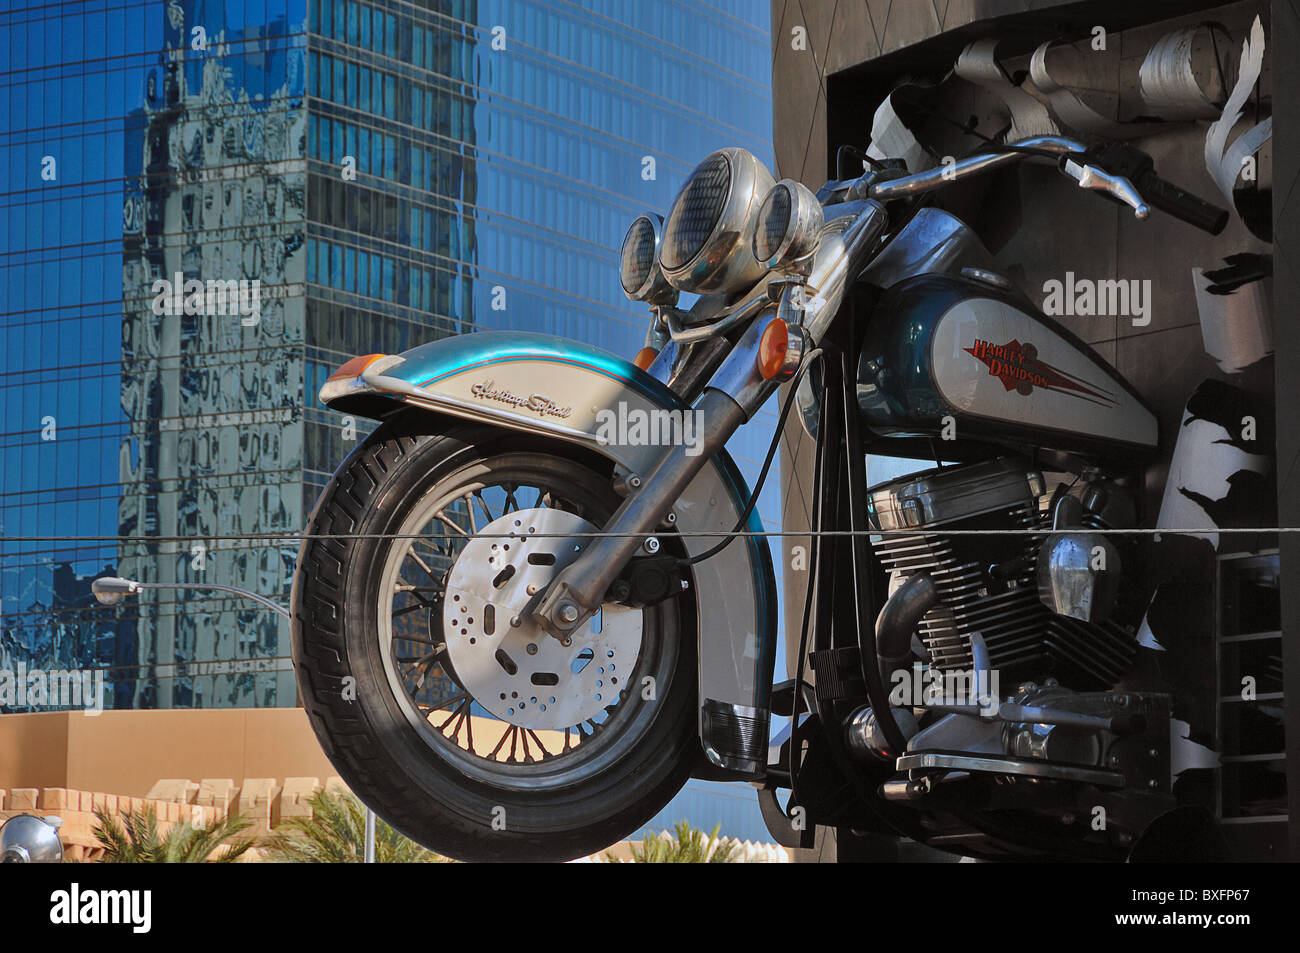 Advertising Model Of A Harley Davidson Motor Cycle Outside The Hd